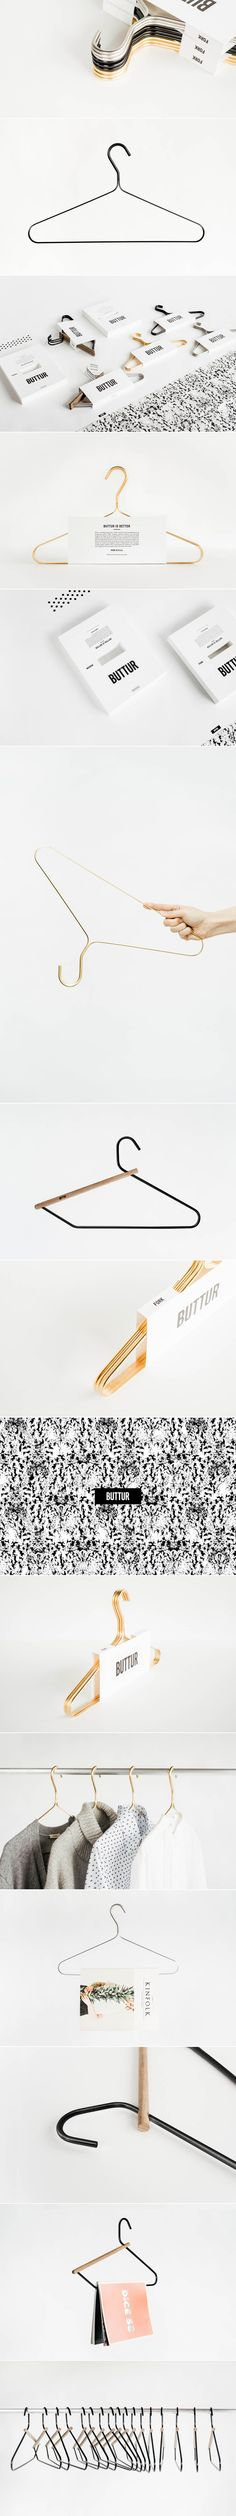 Buttur. No ordinary hangers. (More design inspiration at www.aldenchong.com)